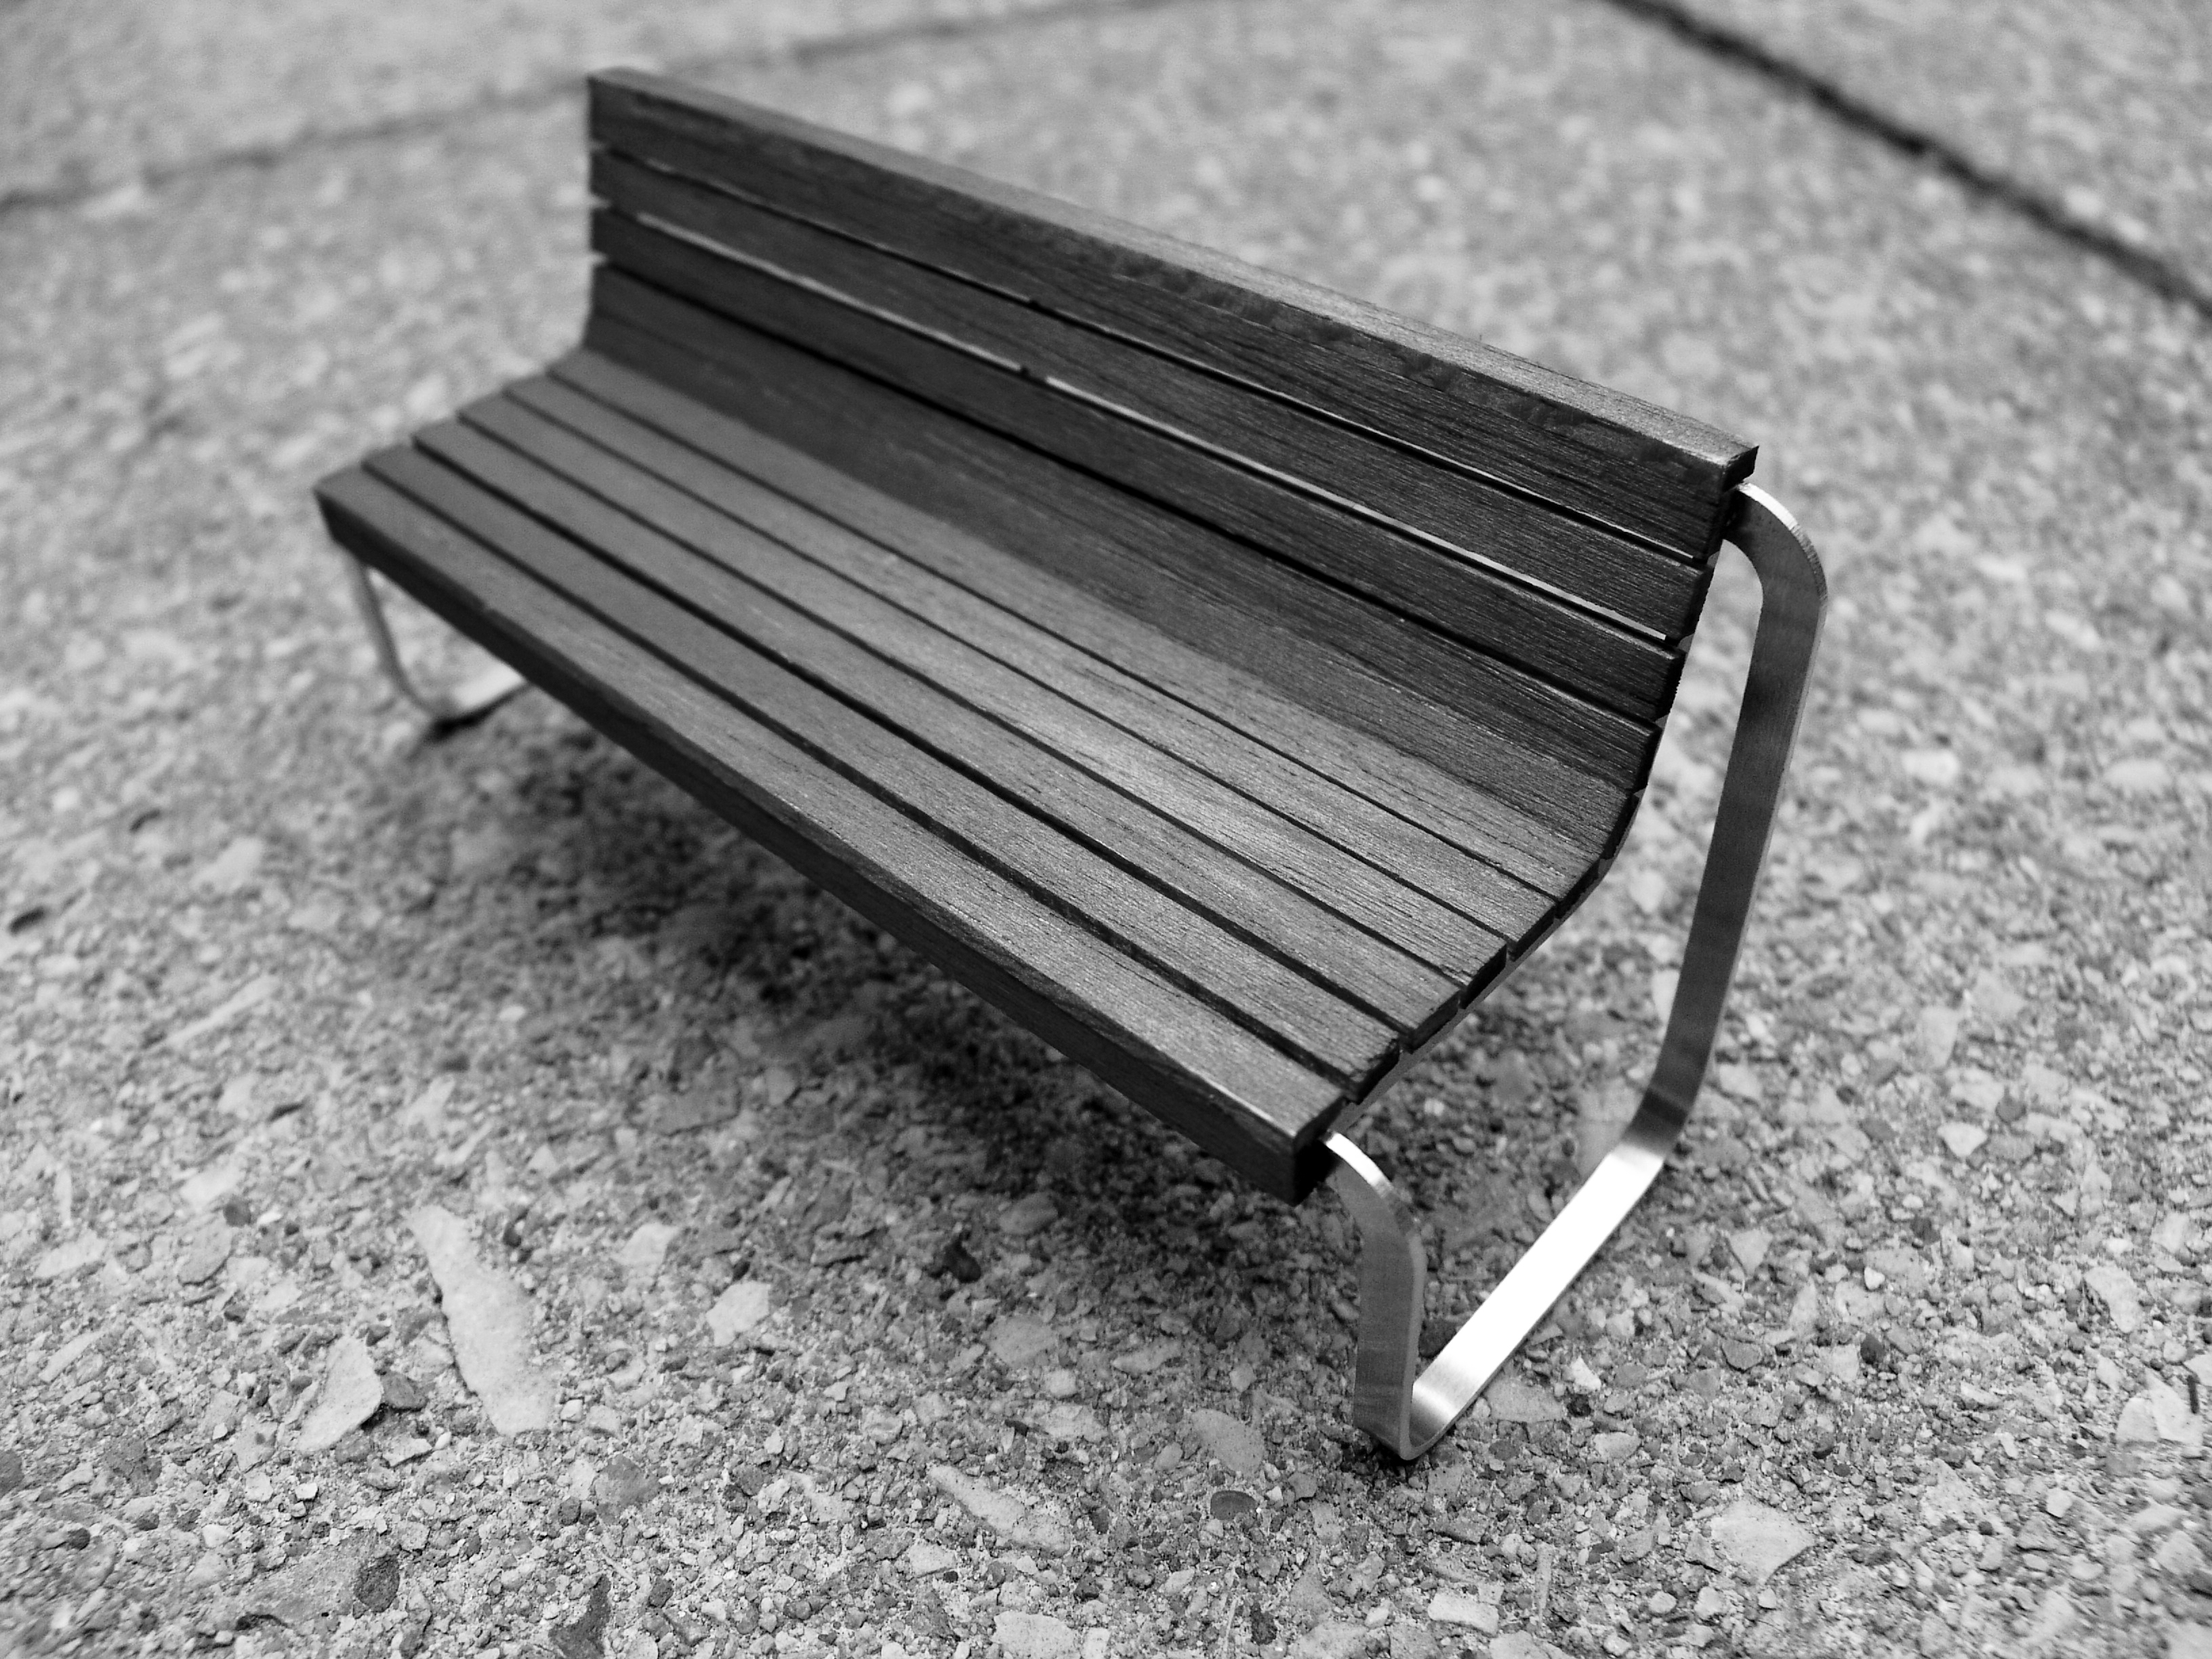 Scale Model 10 Urban Furniture By Andrey Andreev At